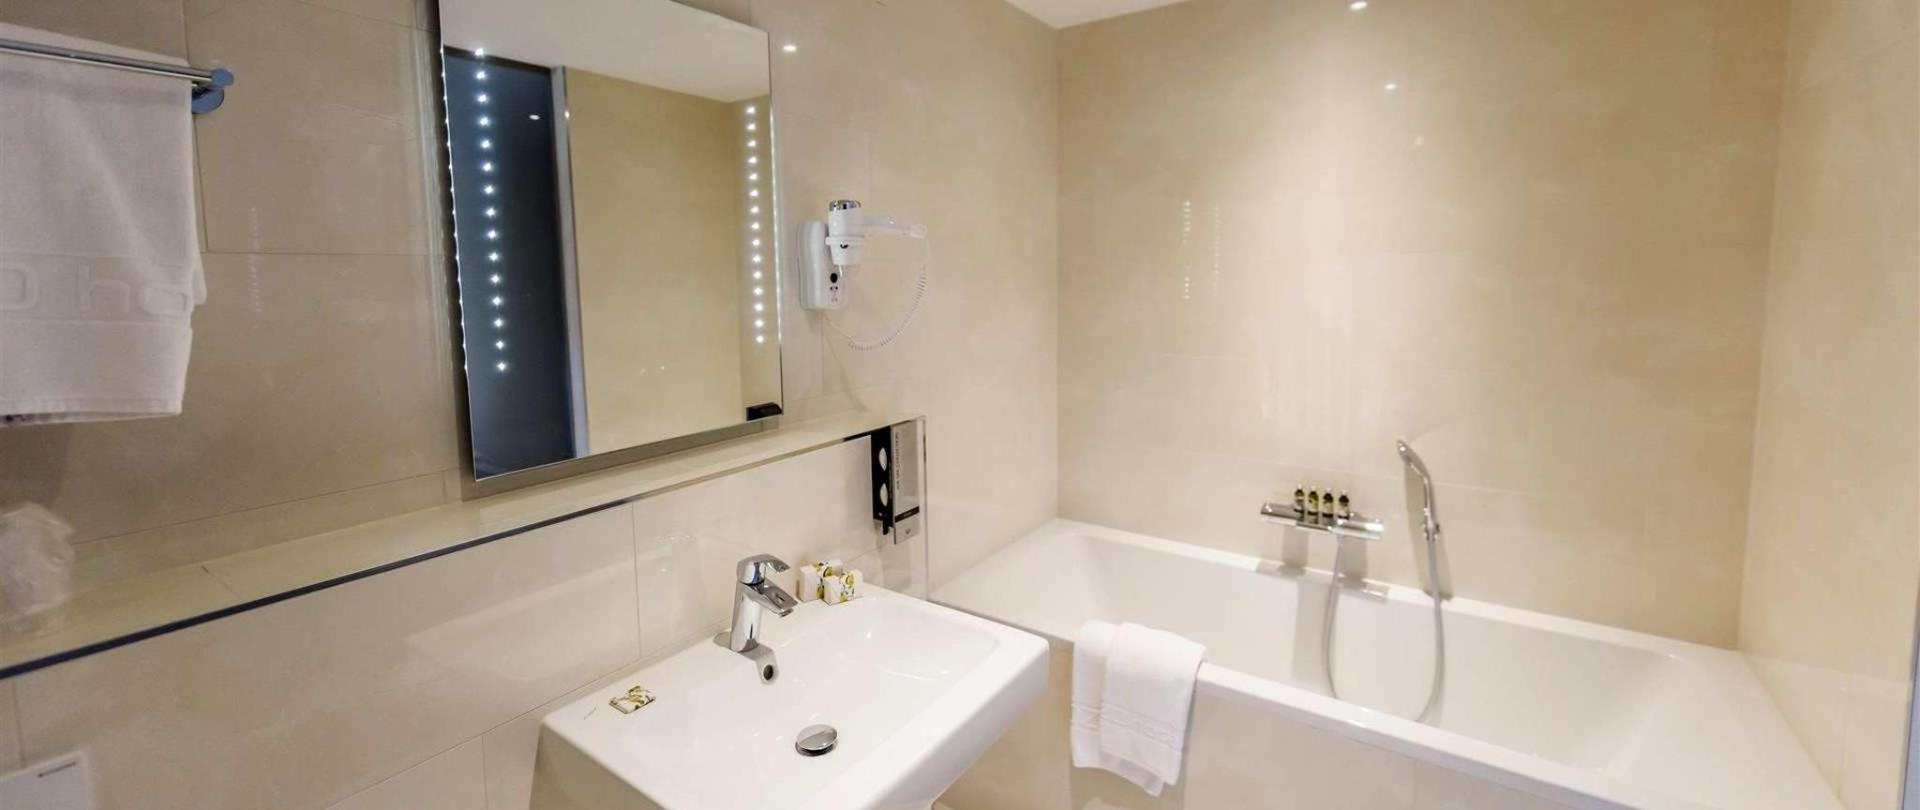 Bathroom of Executive Room